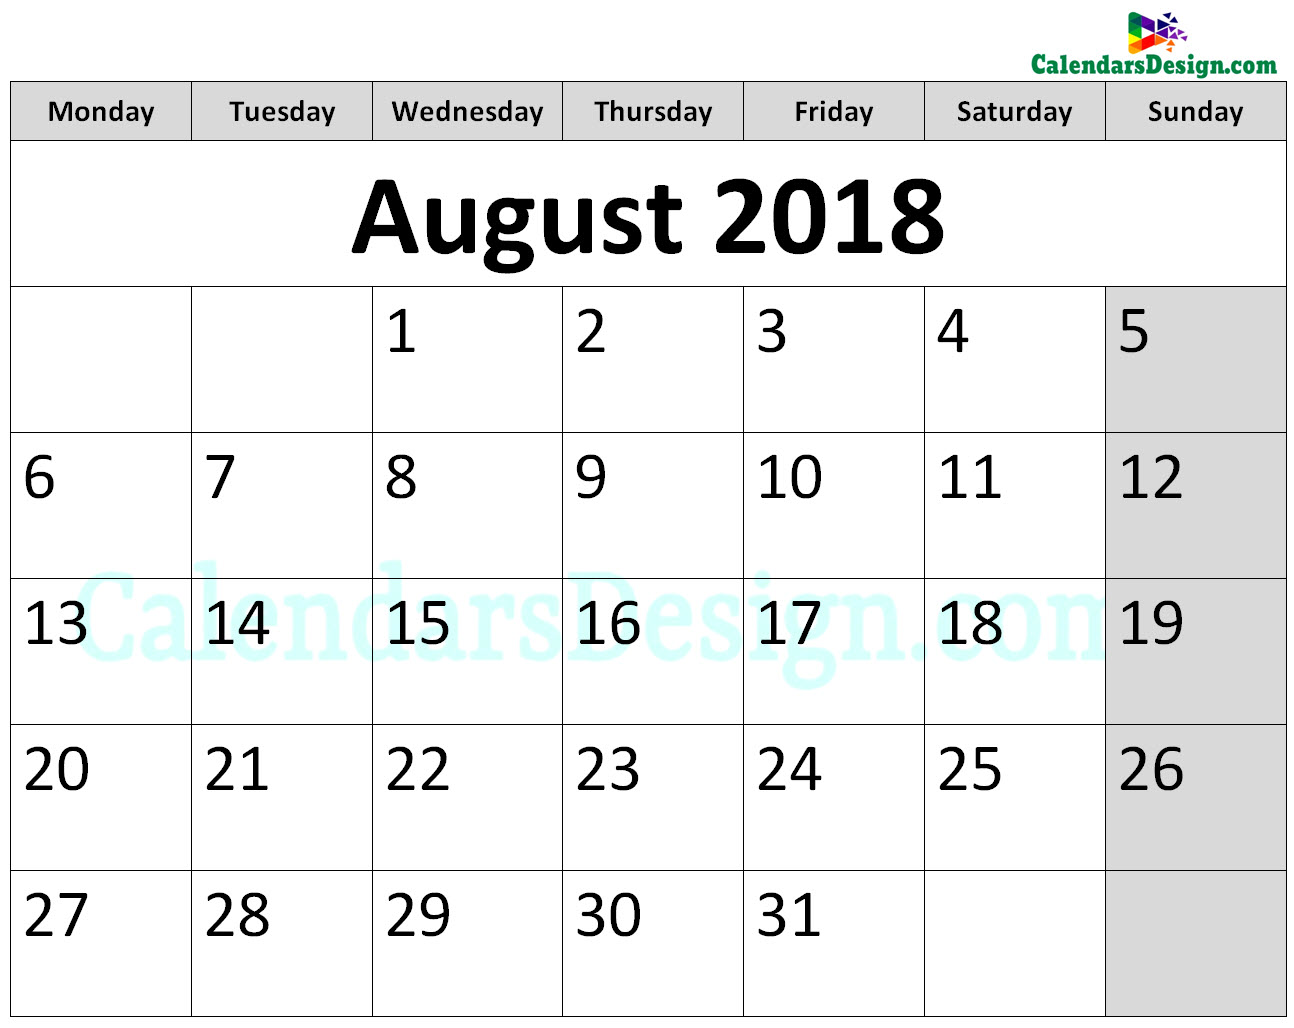 Printable Calendar for August 2018 Page